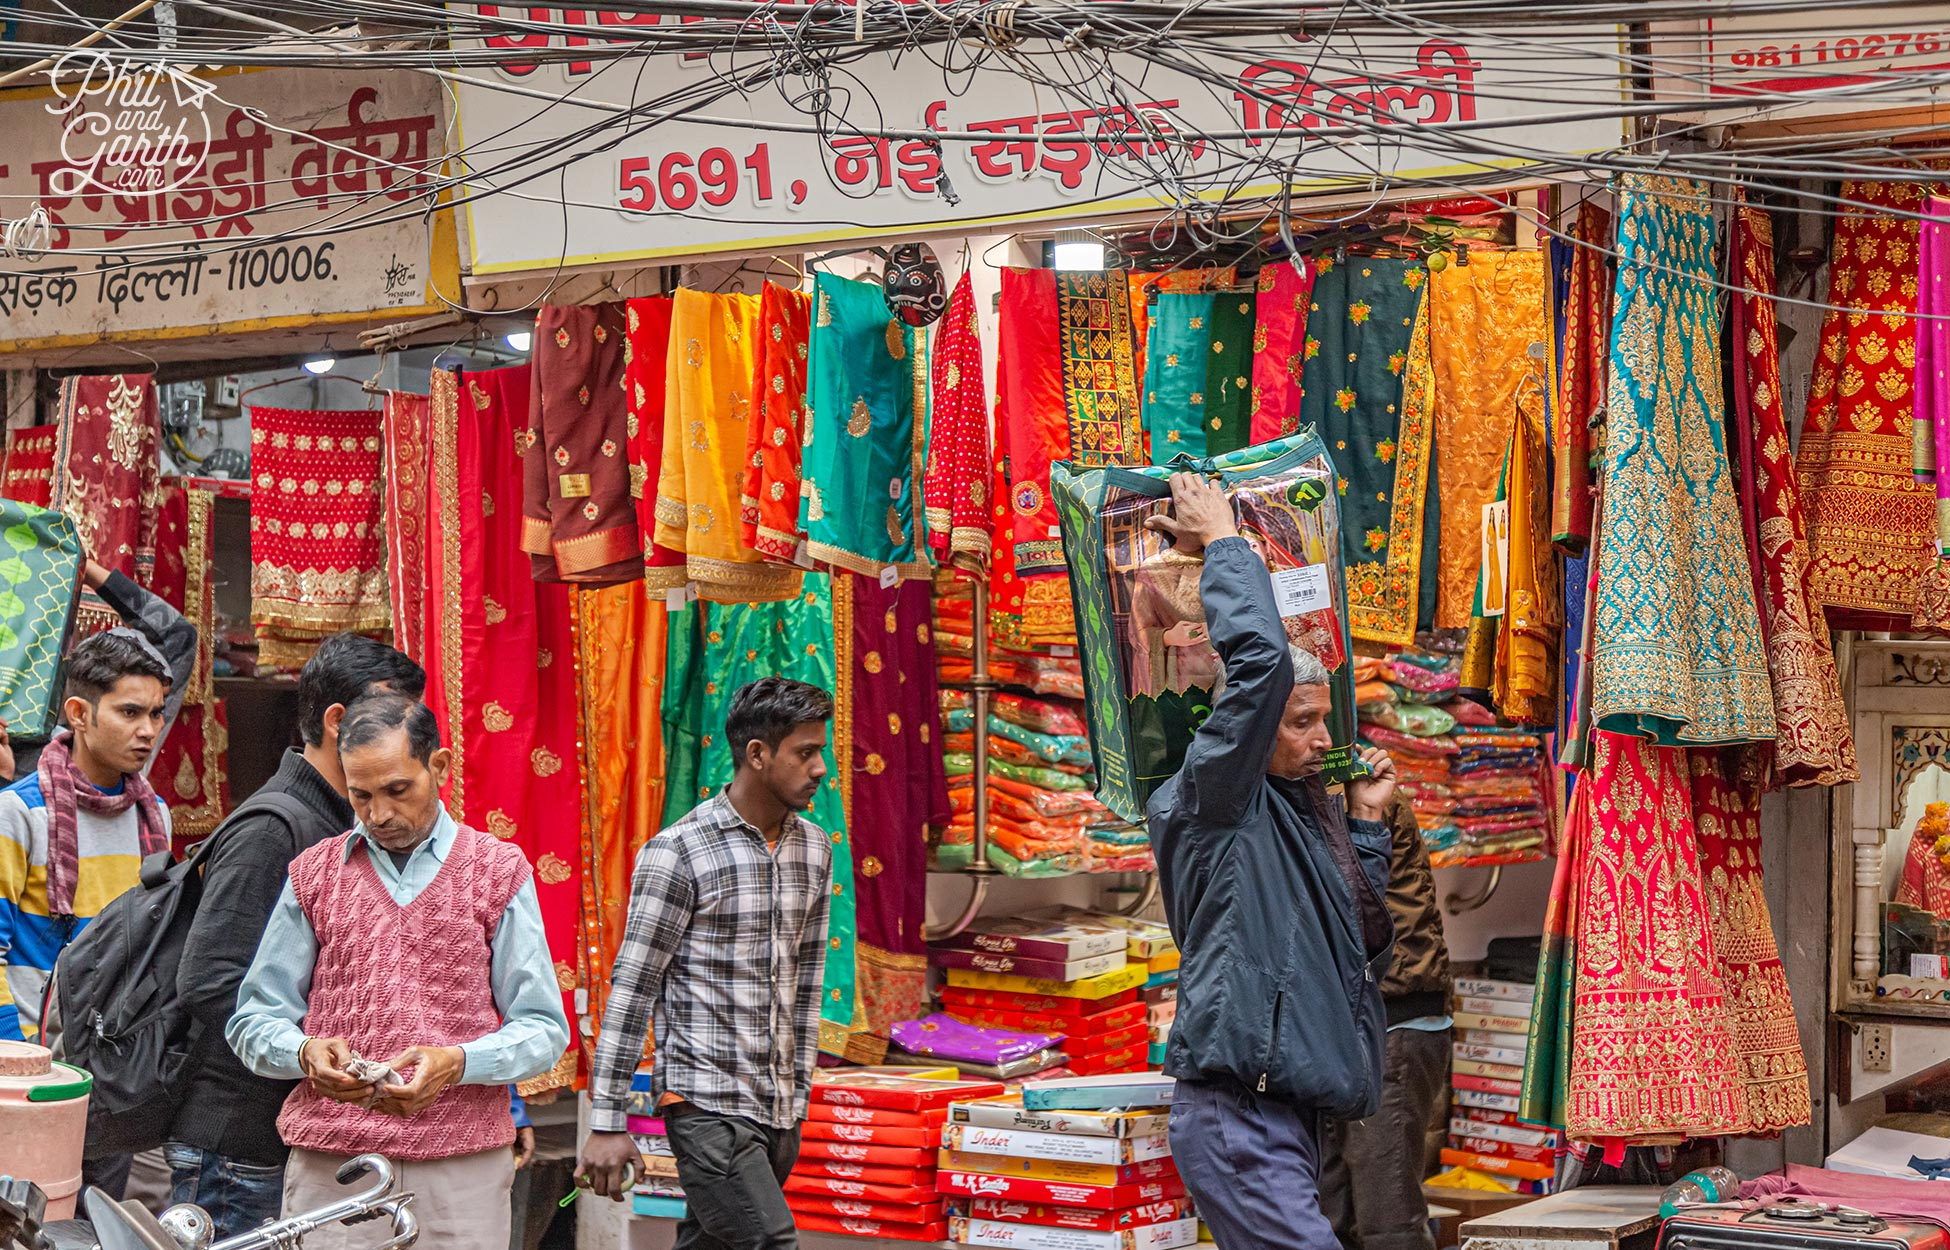 Chandi Chowk is a visual feast for the eyes!